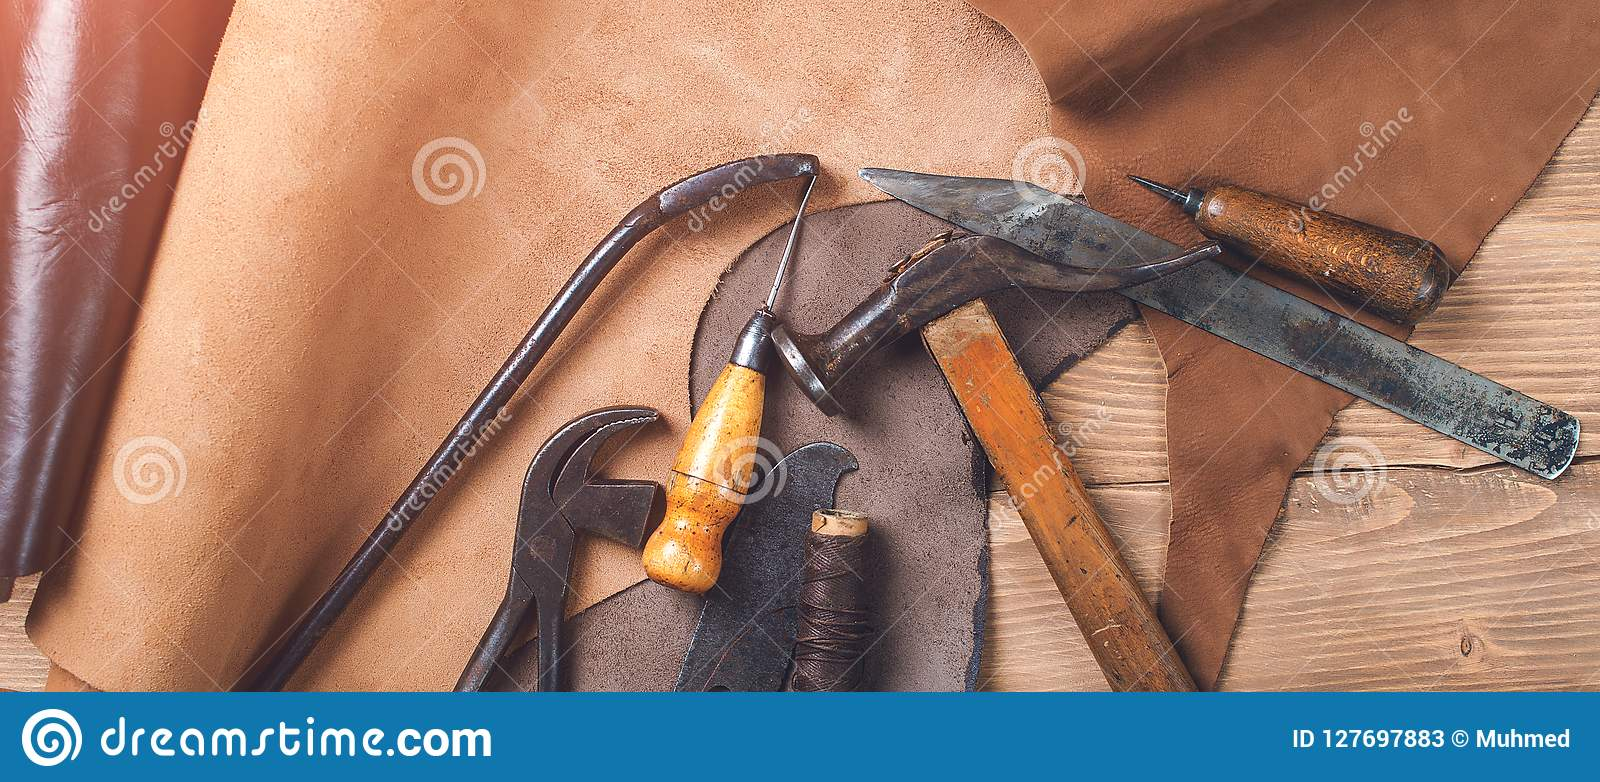 Old tools and leather at cobbler workplace. Shoemaker`s work desk. Flat lay, top view. Set of leather craft tools on wooden backg